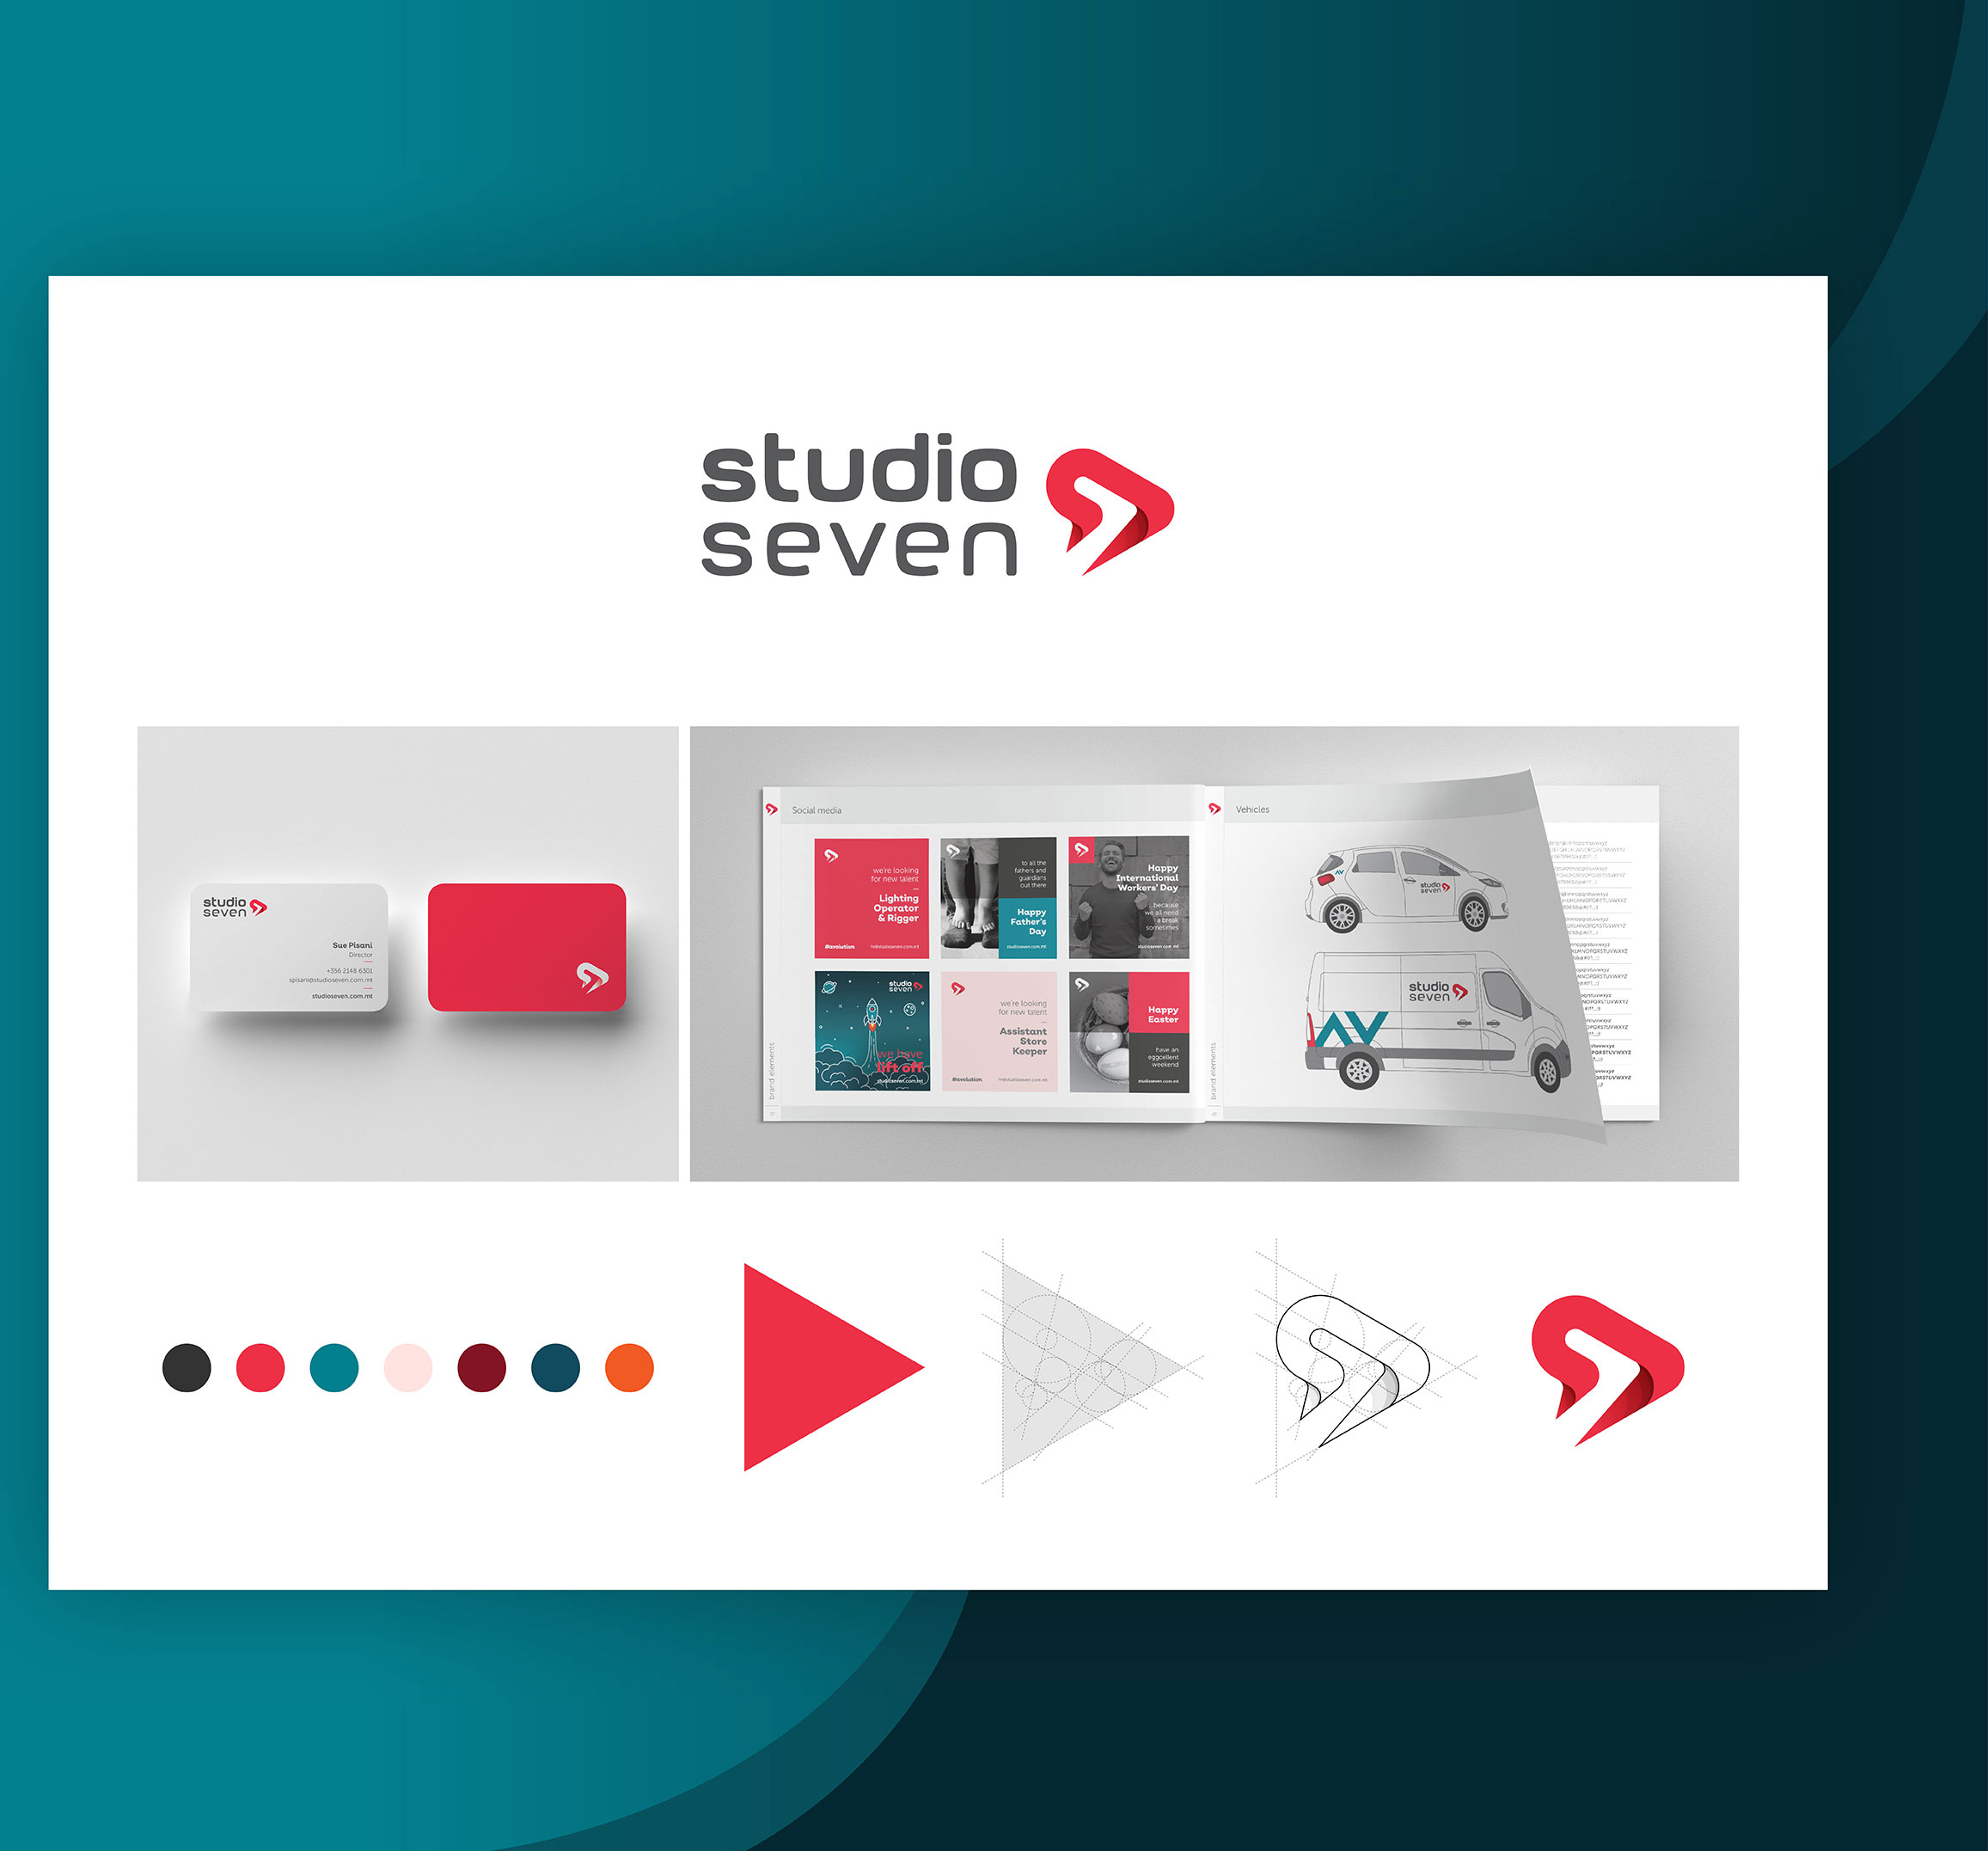 Studioseven logo design and rebrand by Norr and Echo